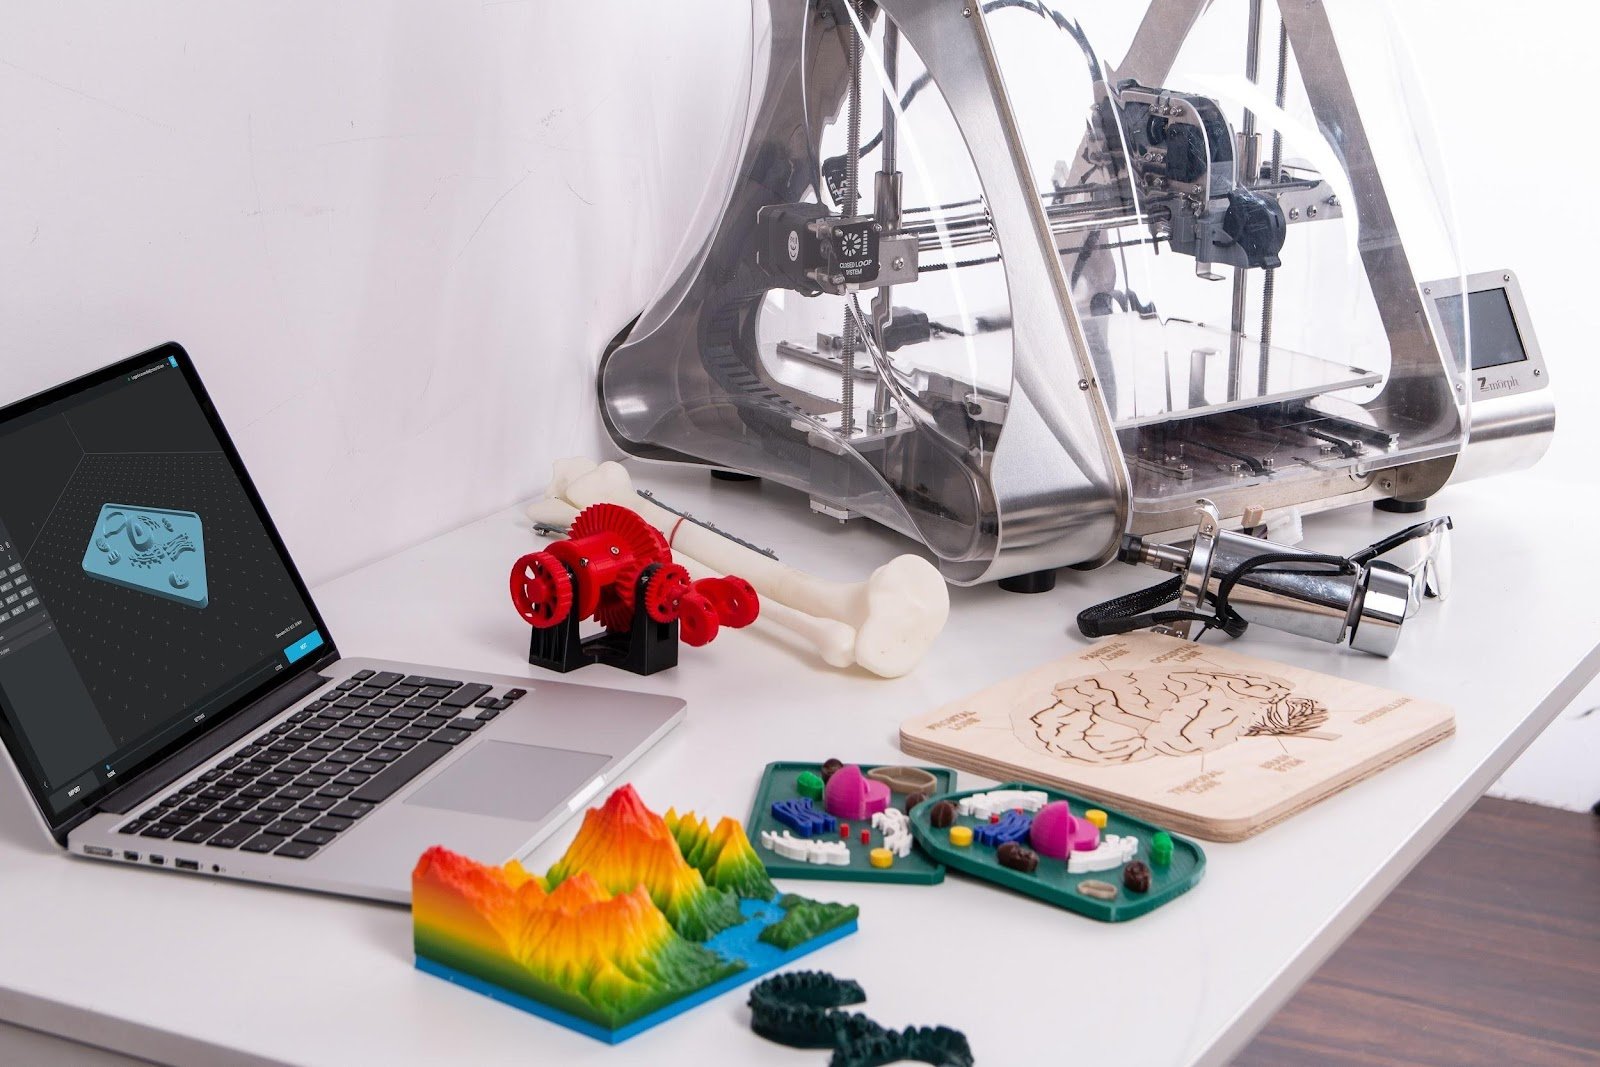 3D printing challenges